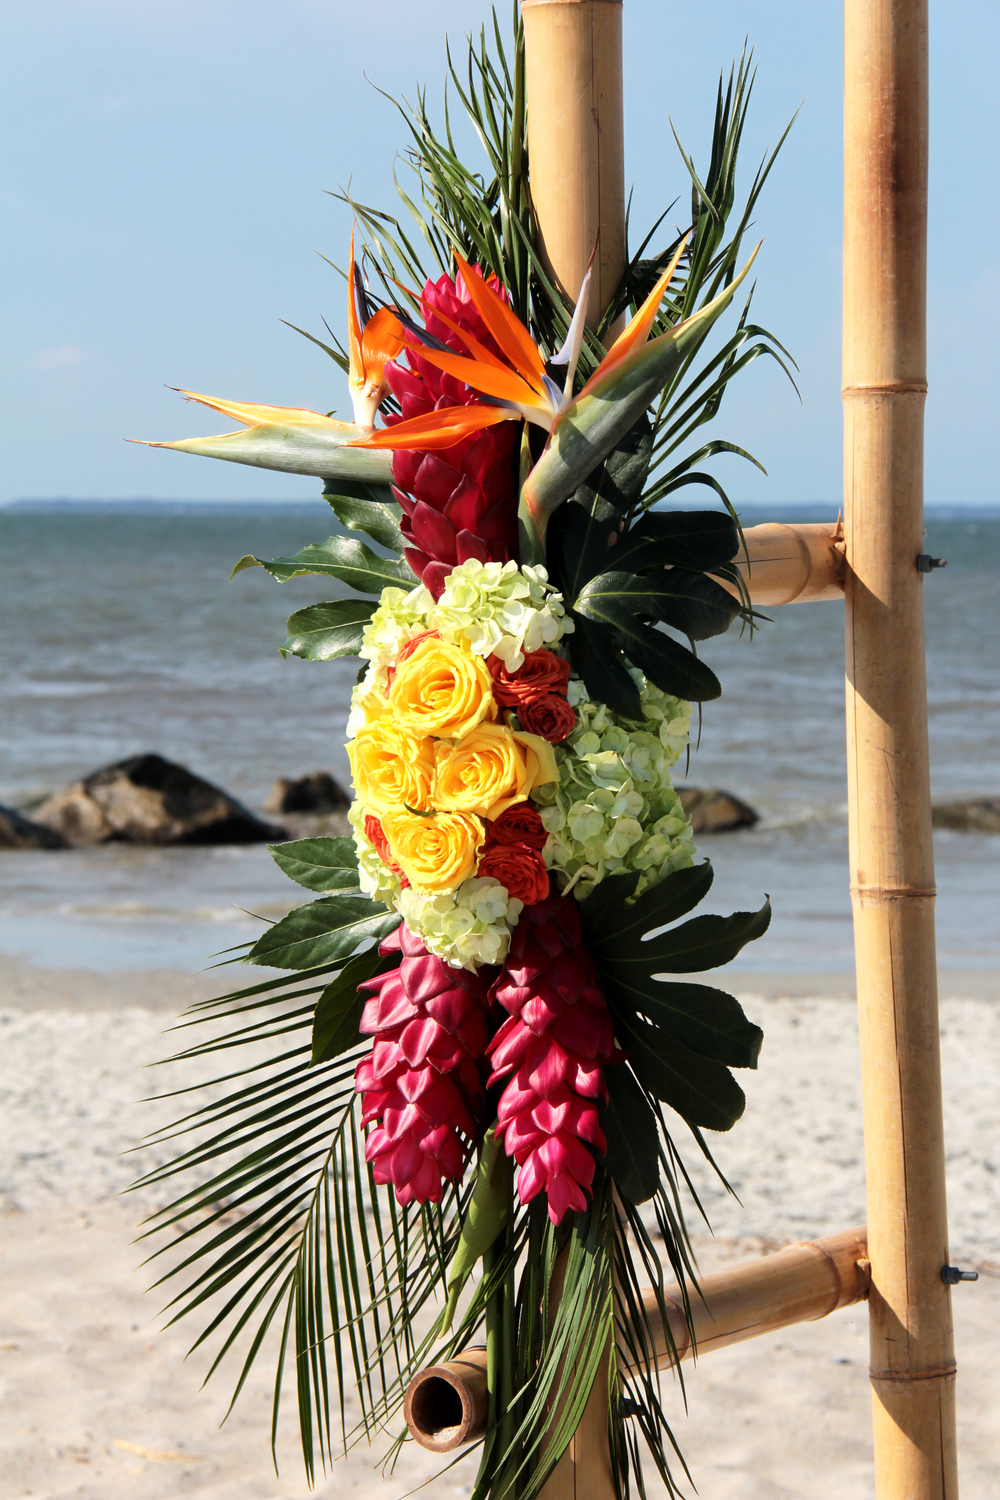 Tropical flowers for a beach wedding